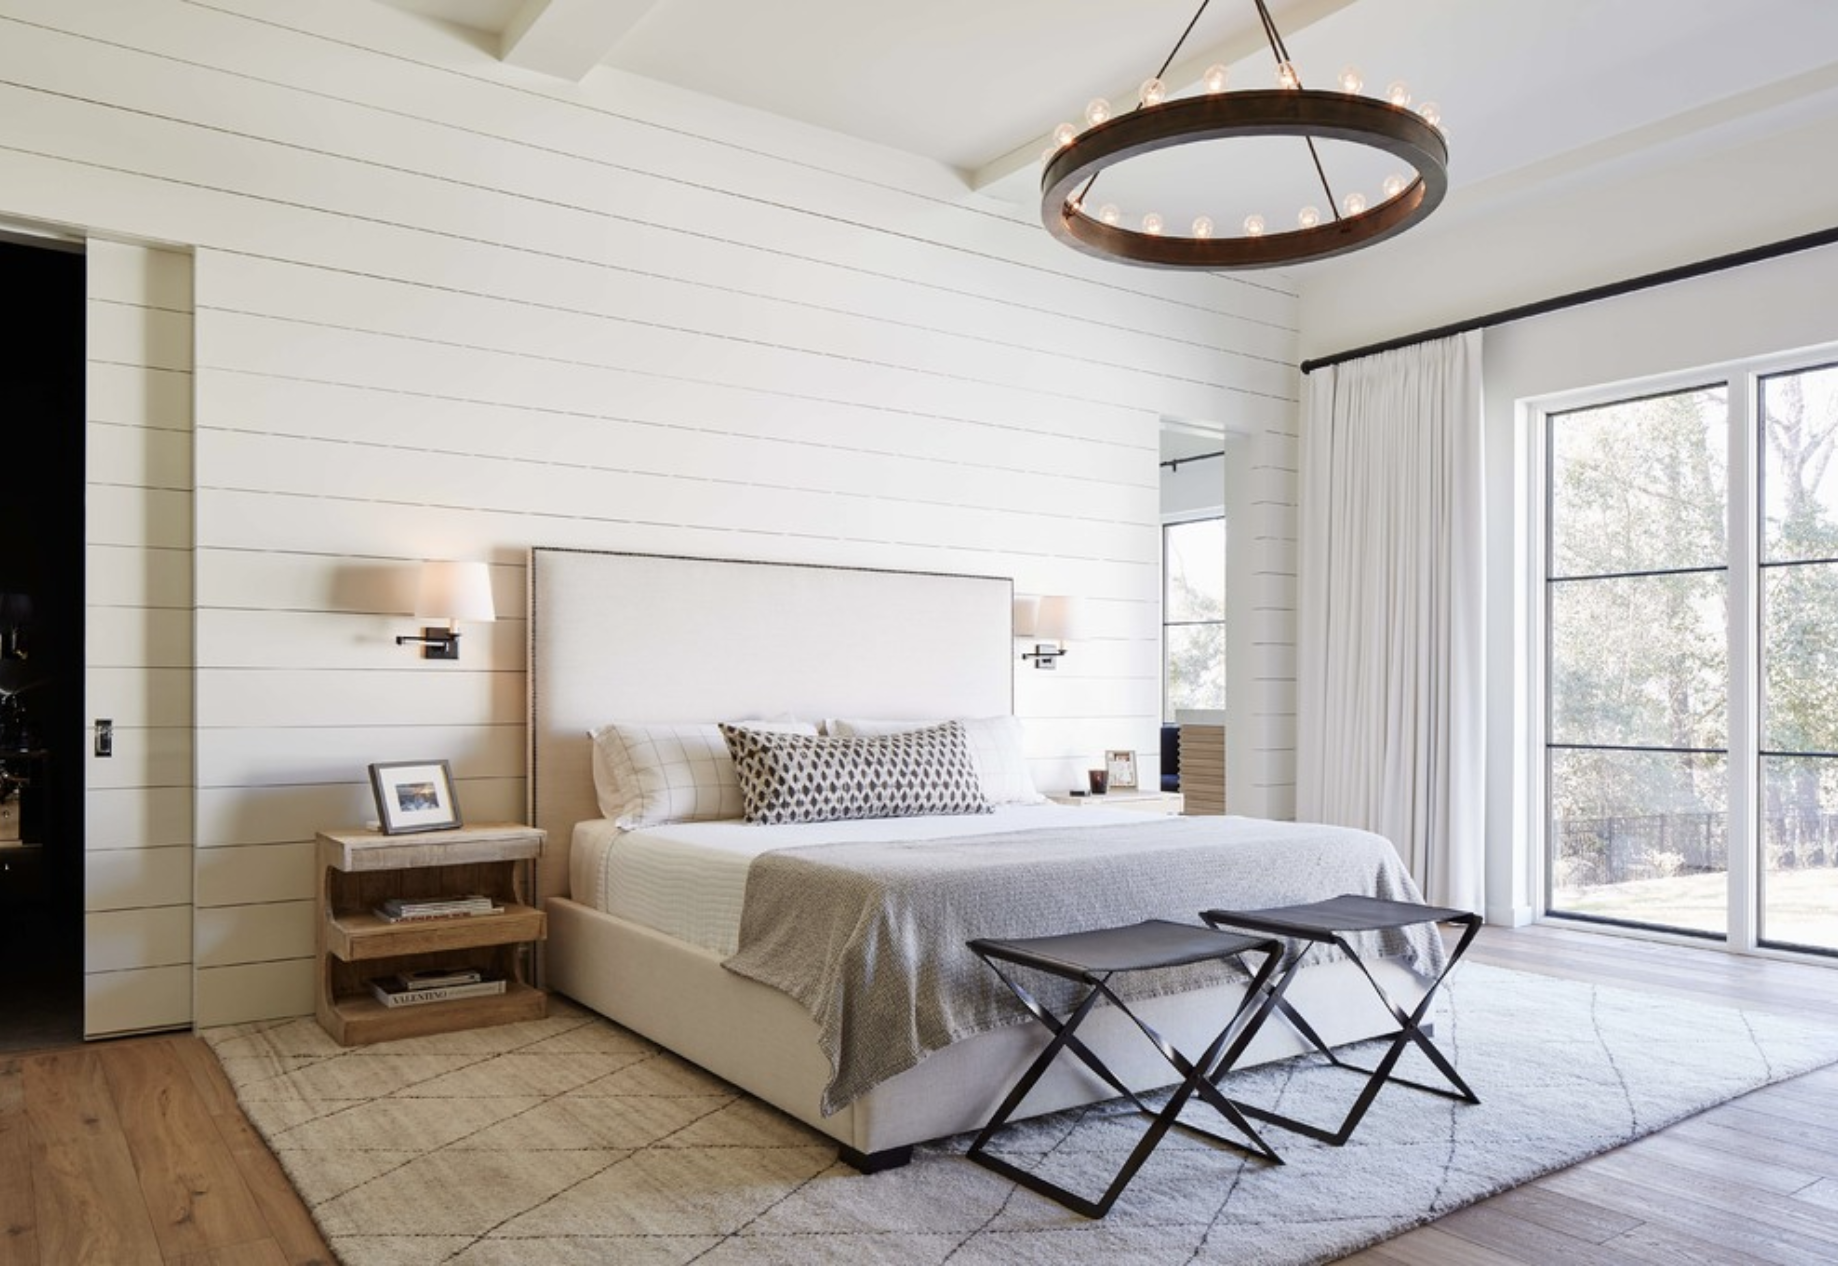 Today I'm sharing with you guys our master bedroom inspiration board, a compilation of our plans to turn our dated master bedroom into a beautiful modern farmhouse retreat!